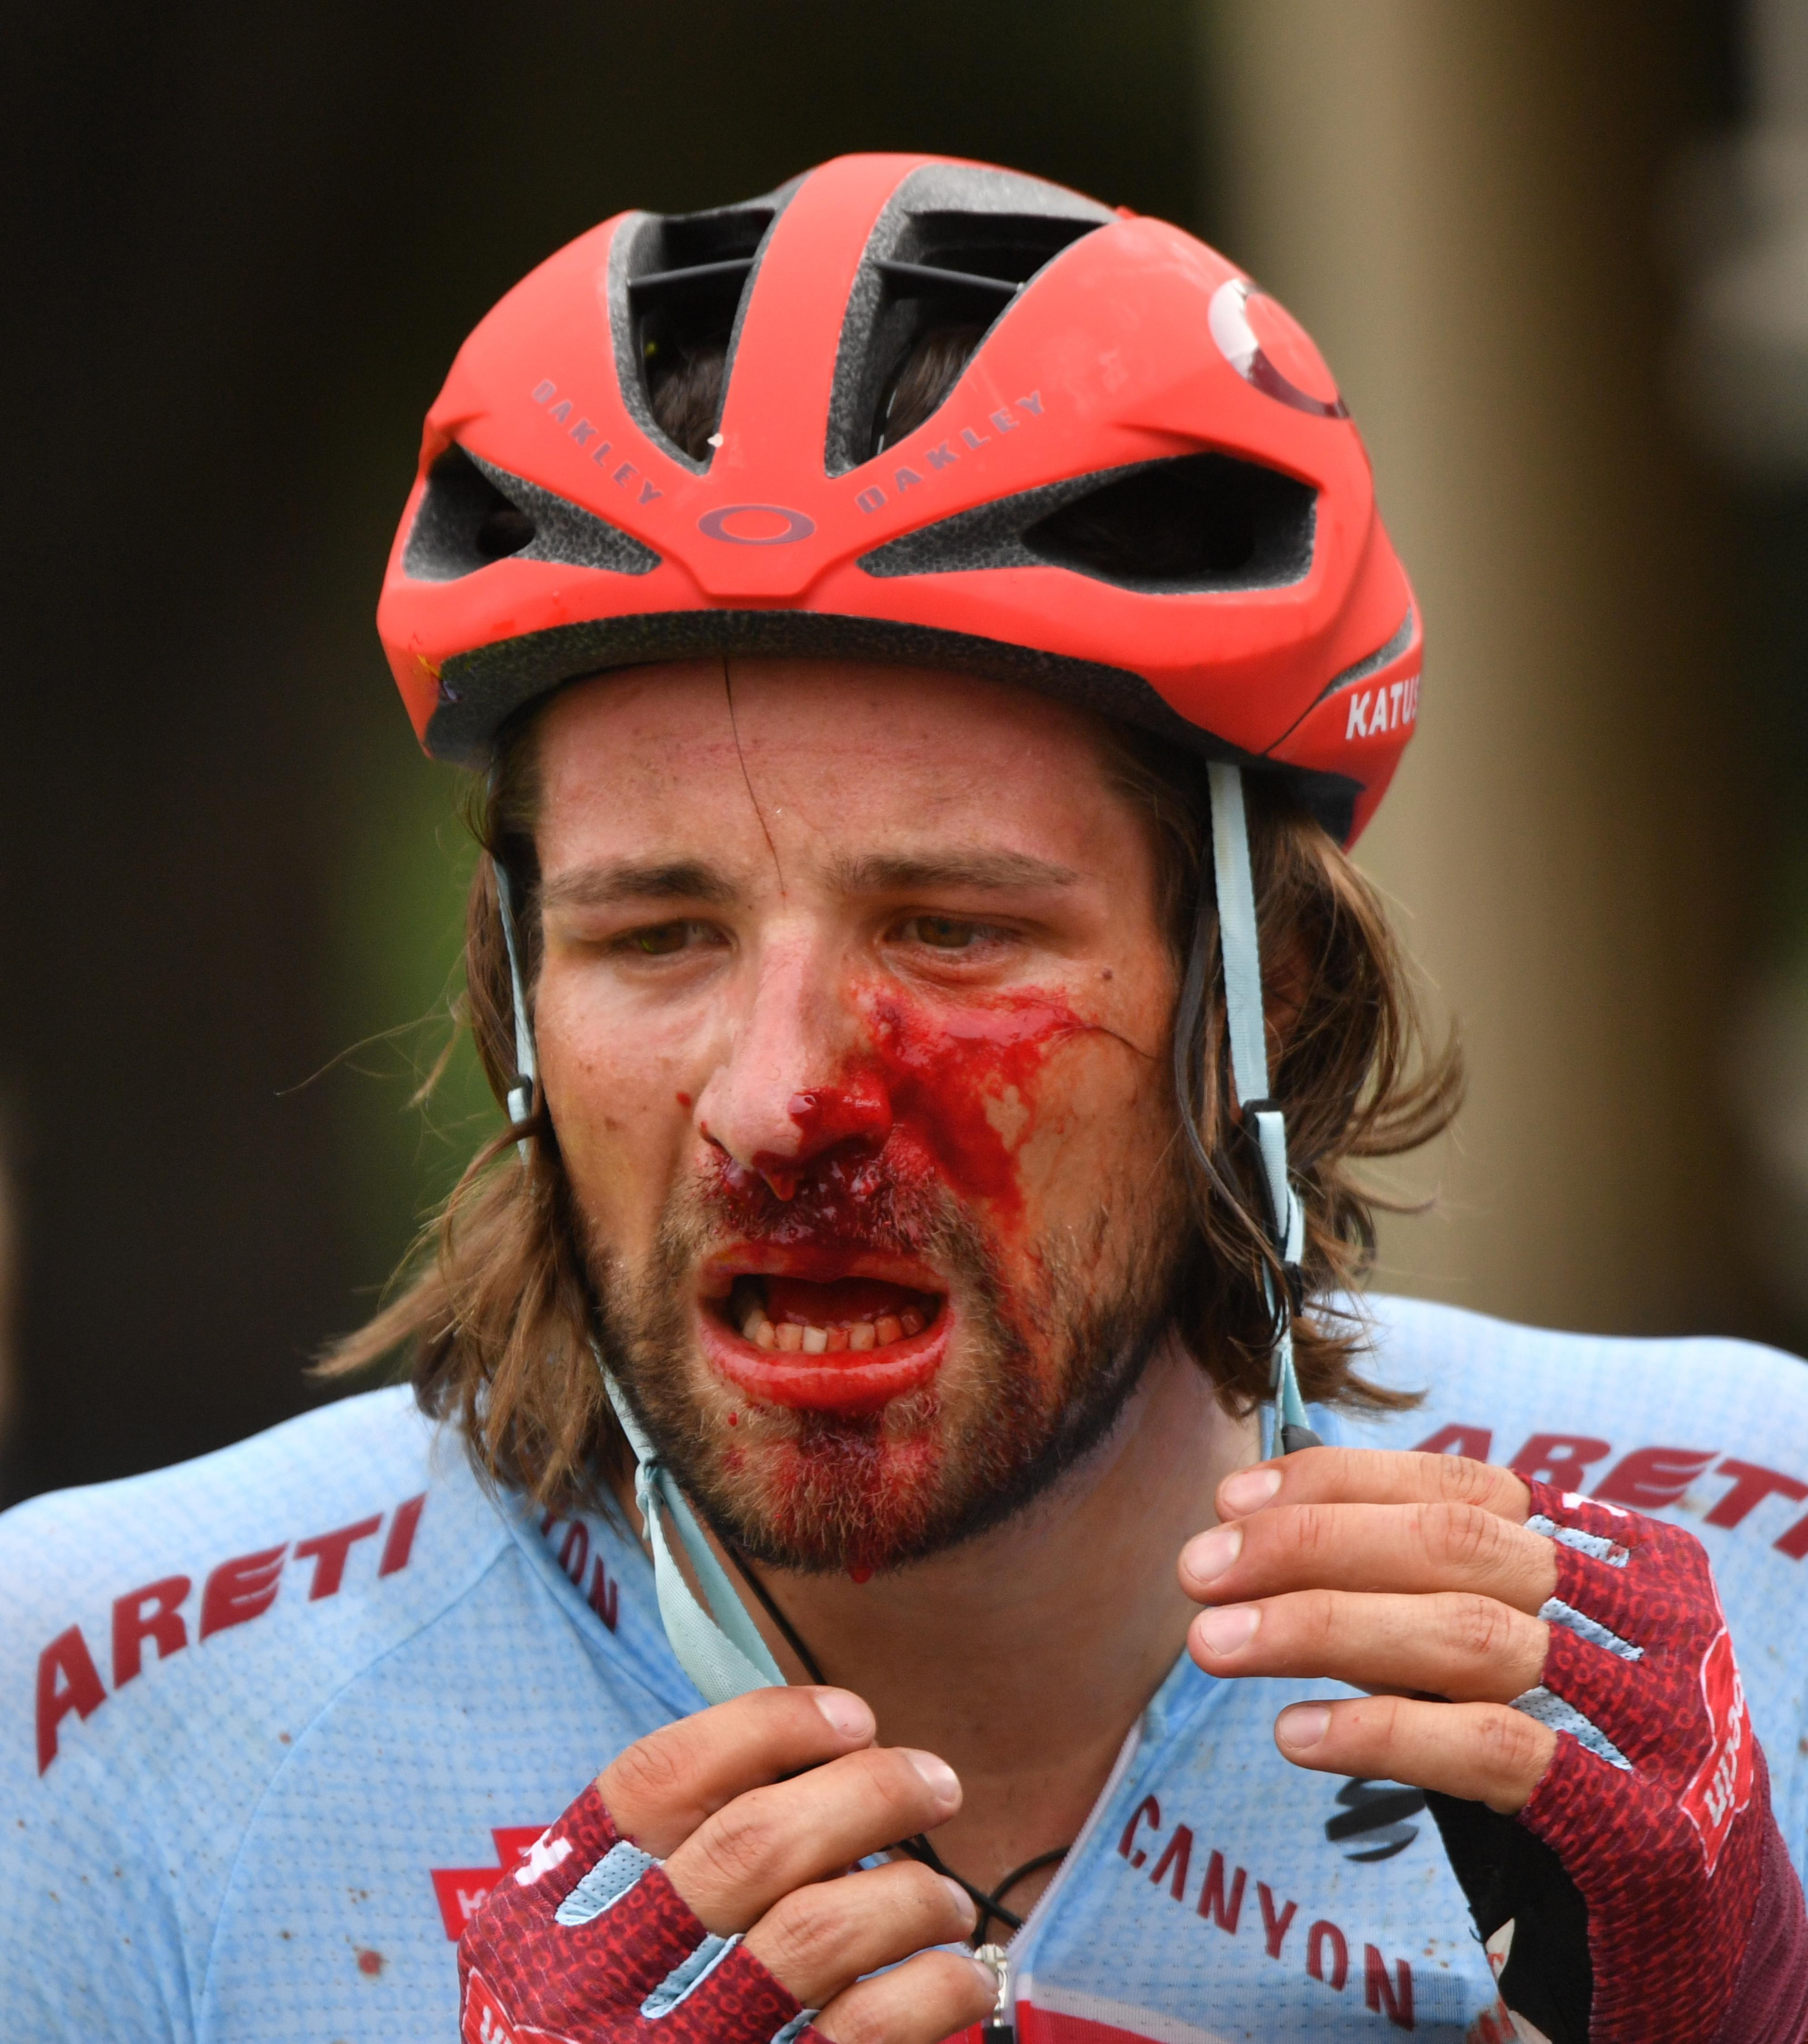 Marco Haller suffered an awful smash in the Tour Down Under